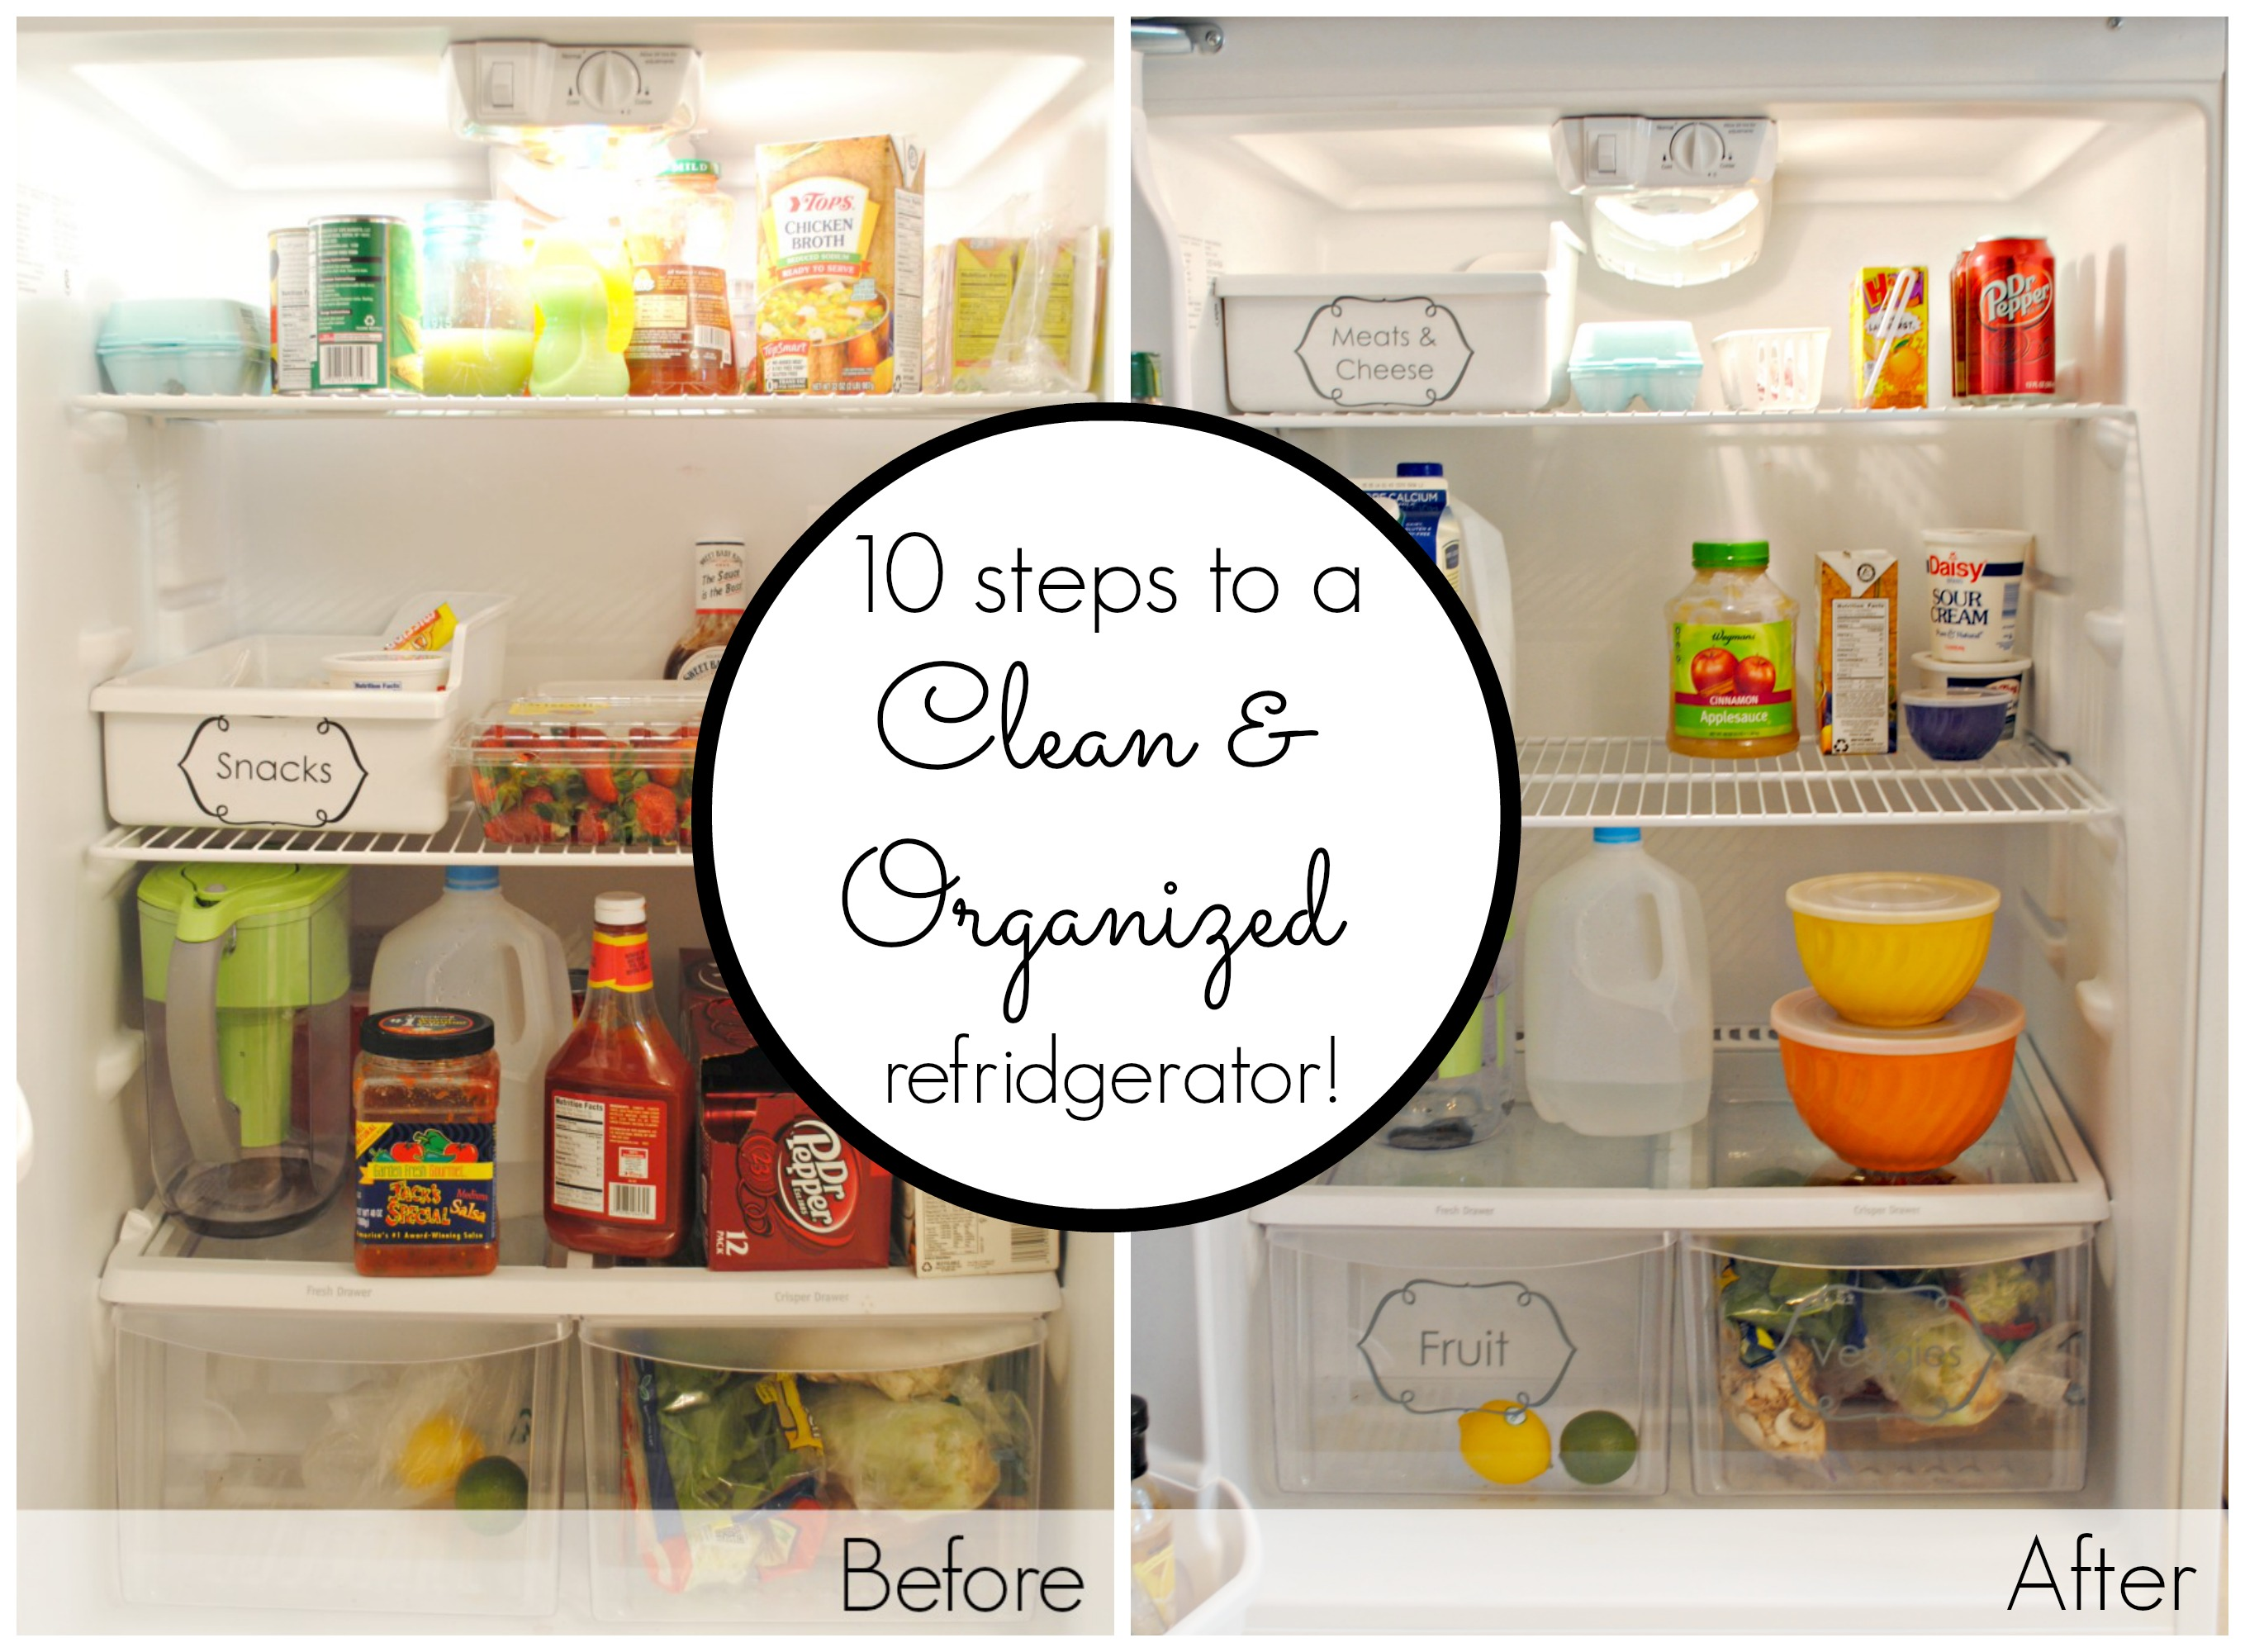 10 steps to a clean and organized fridge classy clutter. Black Bedroom Furniture Sets. Home Design Ideas